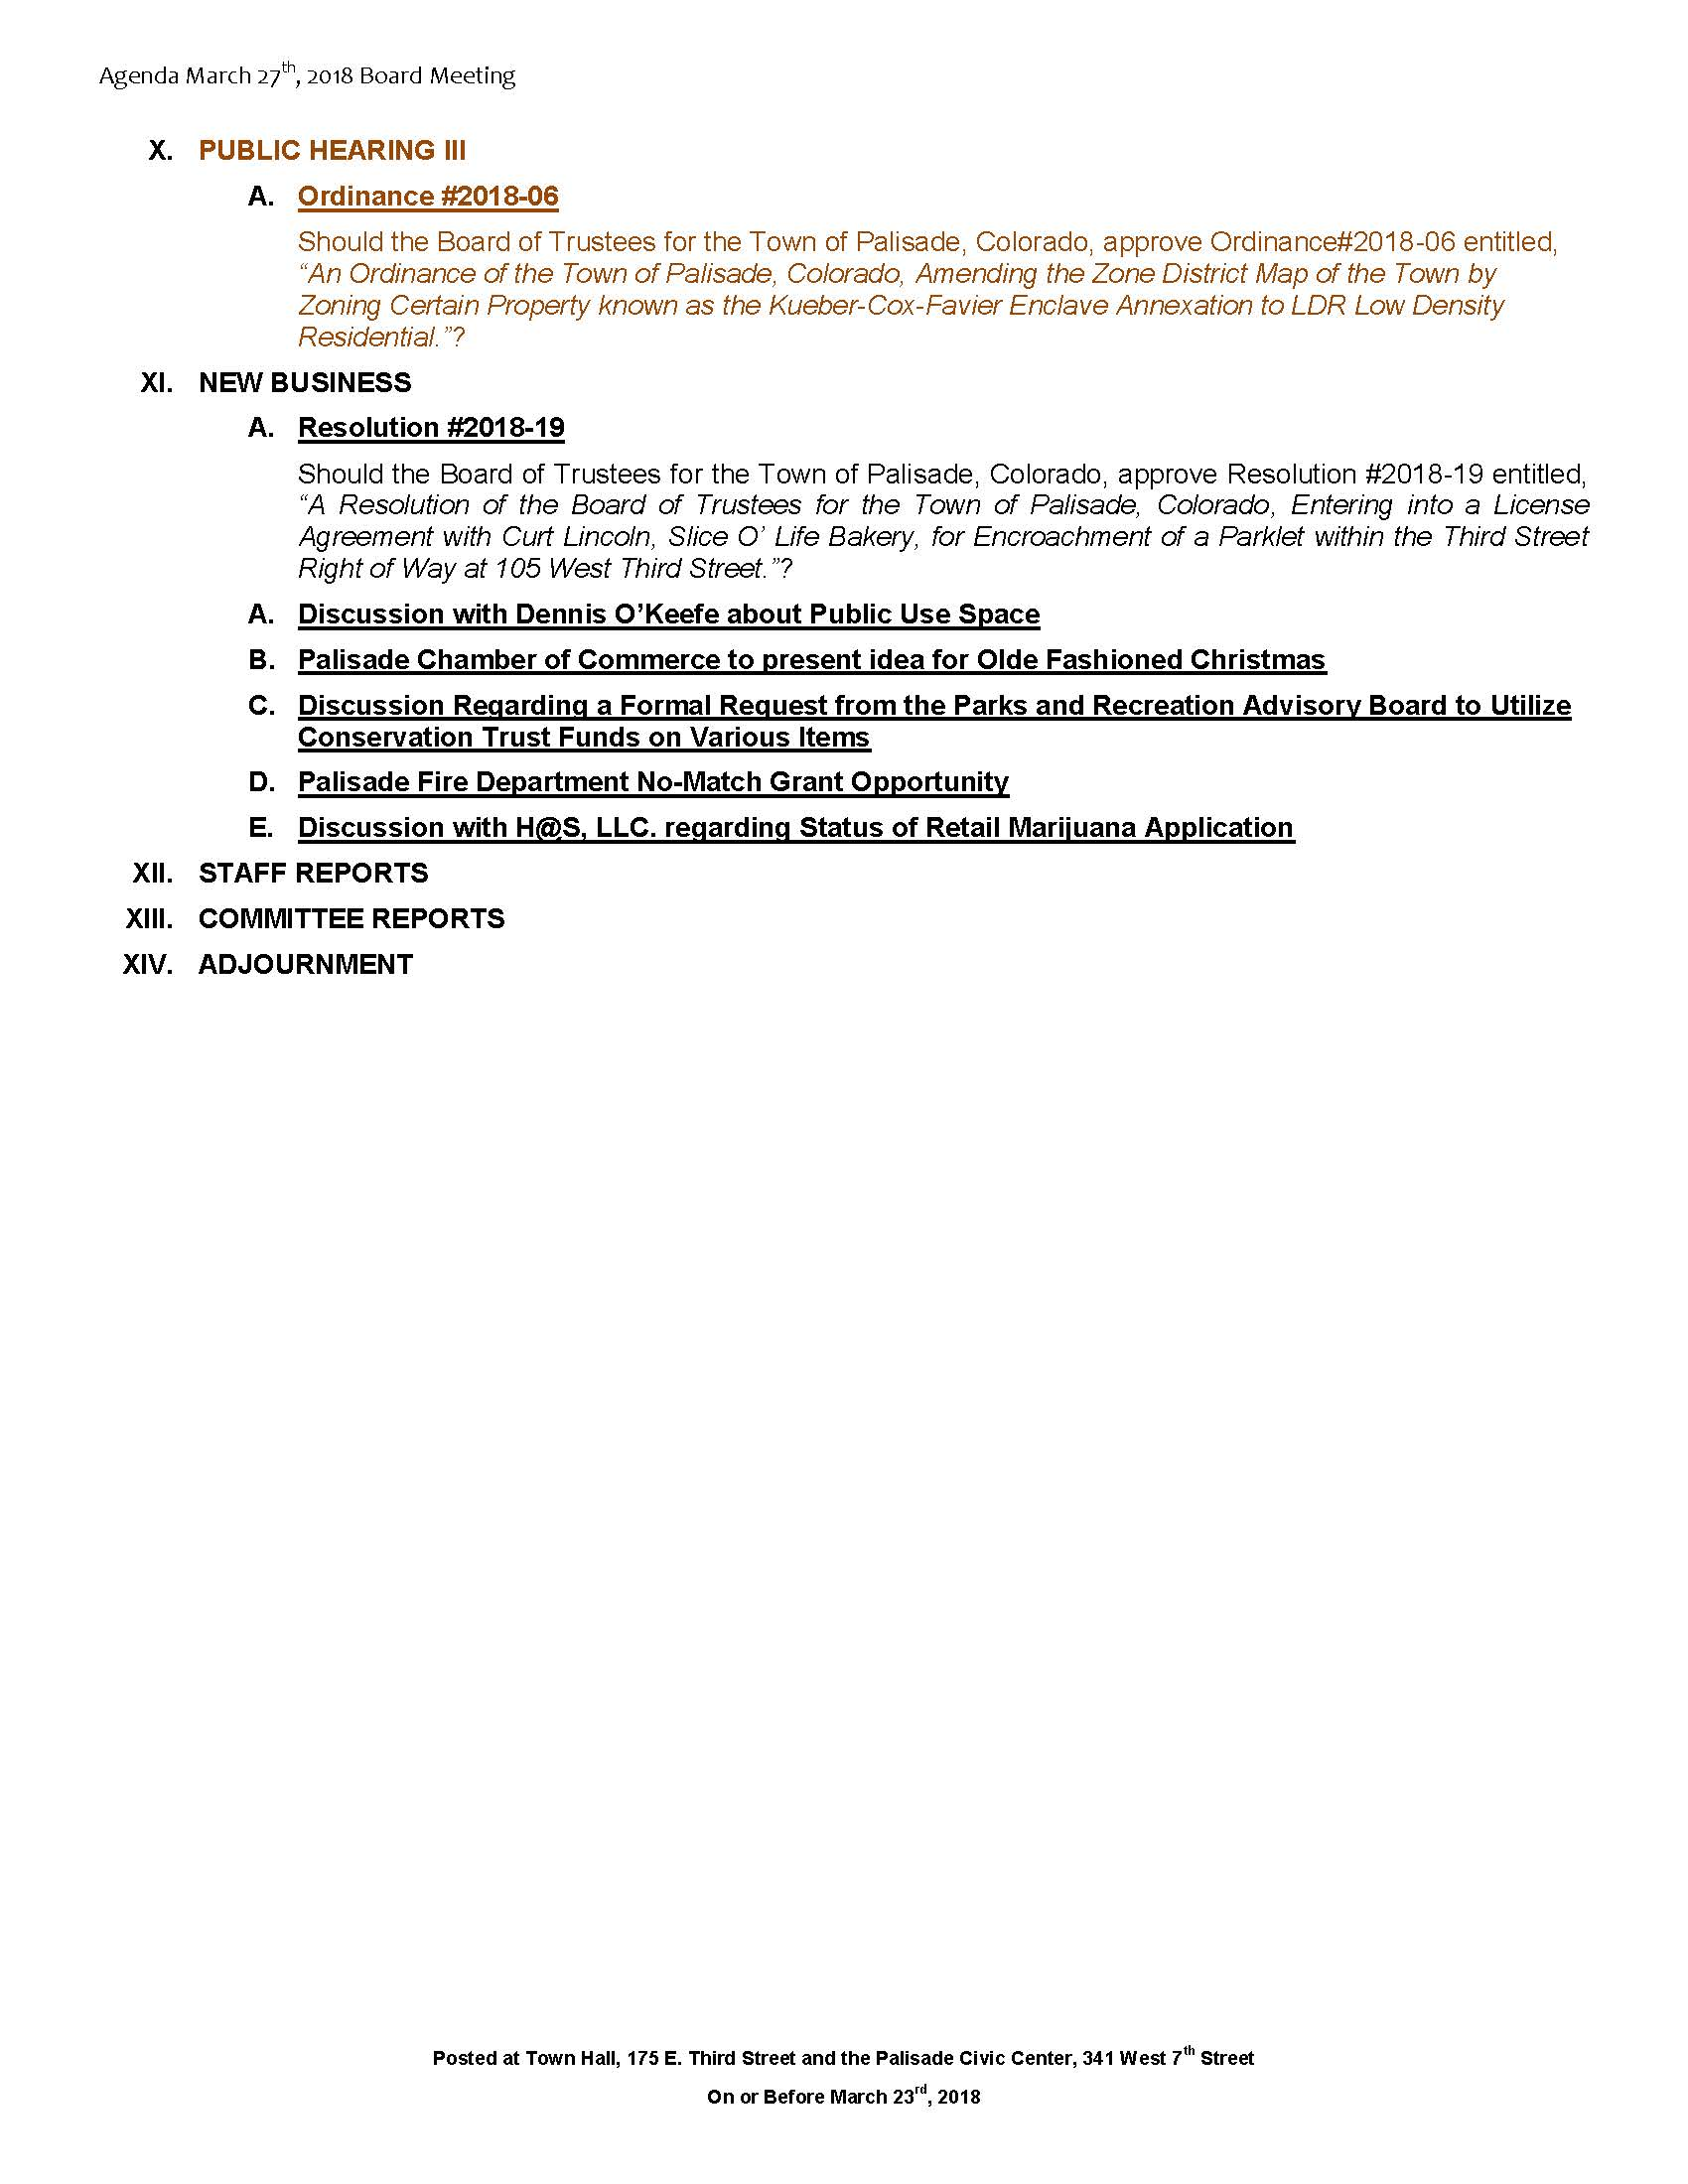 March 27th 2018 Board Meeting Agenda Page 2